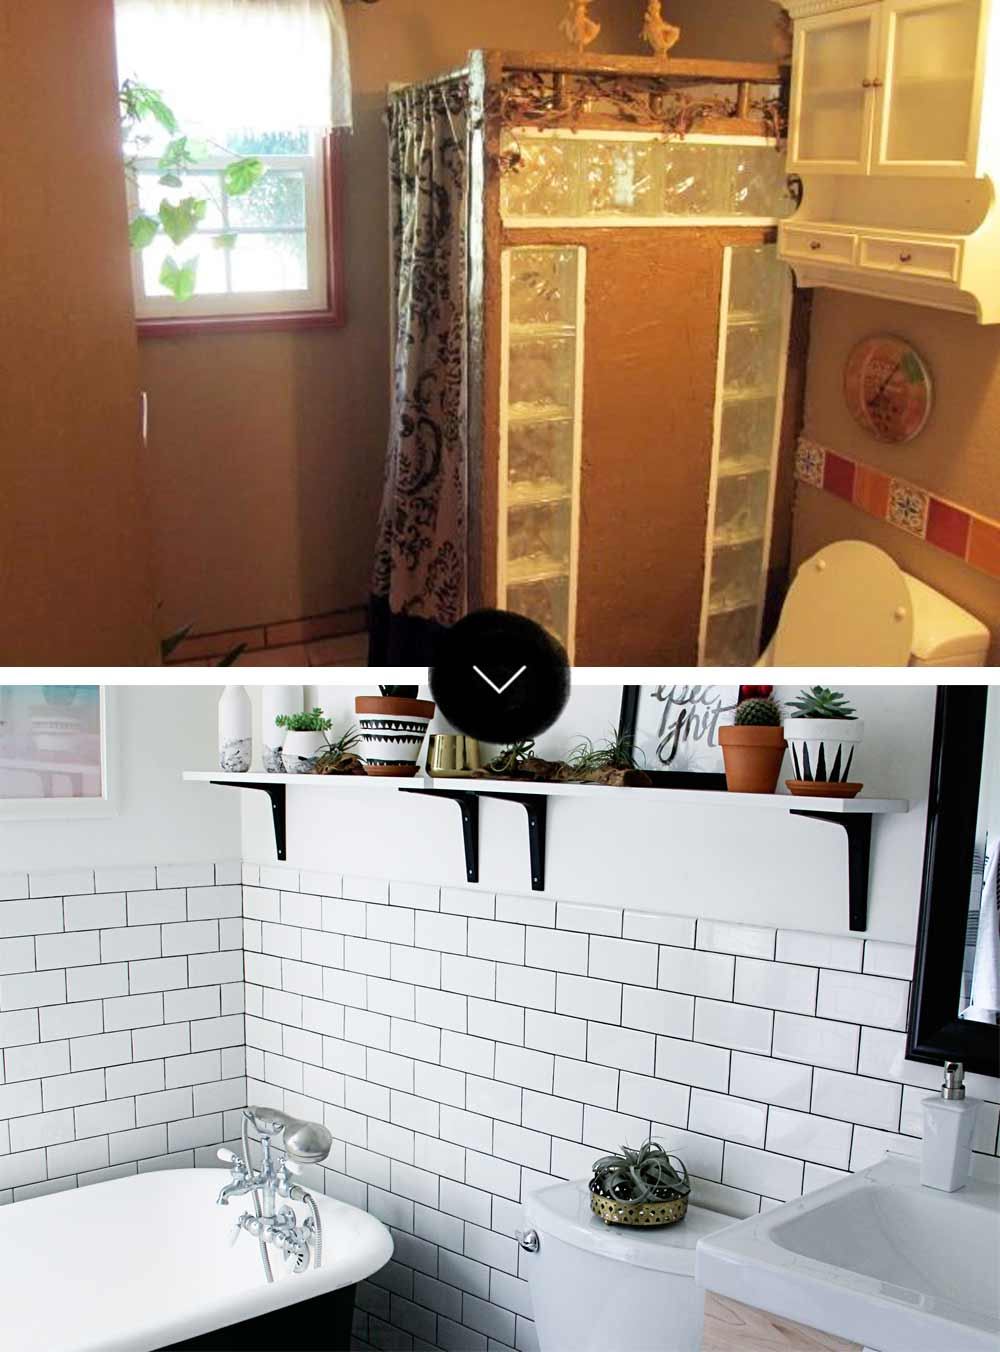 Before After A Modern Bohemian Fixer Upper In Southern California On Design